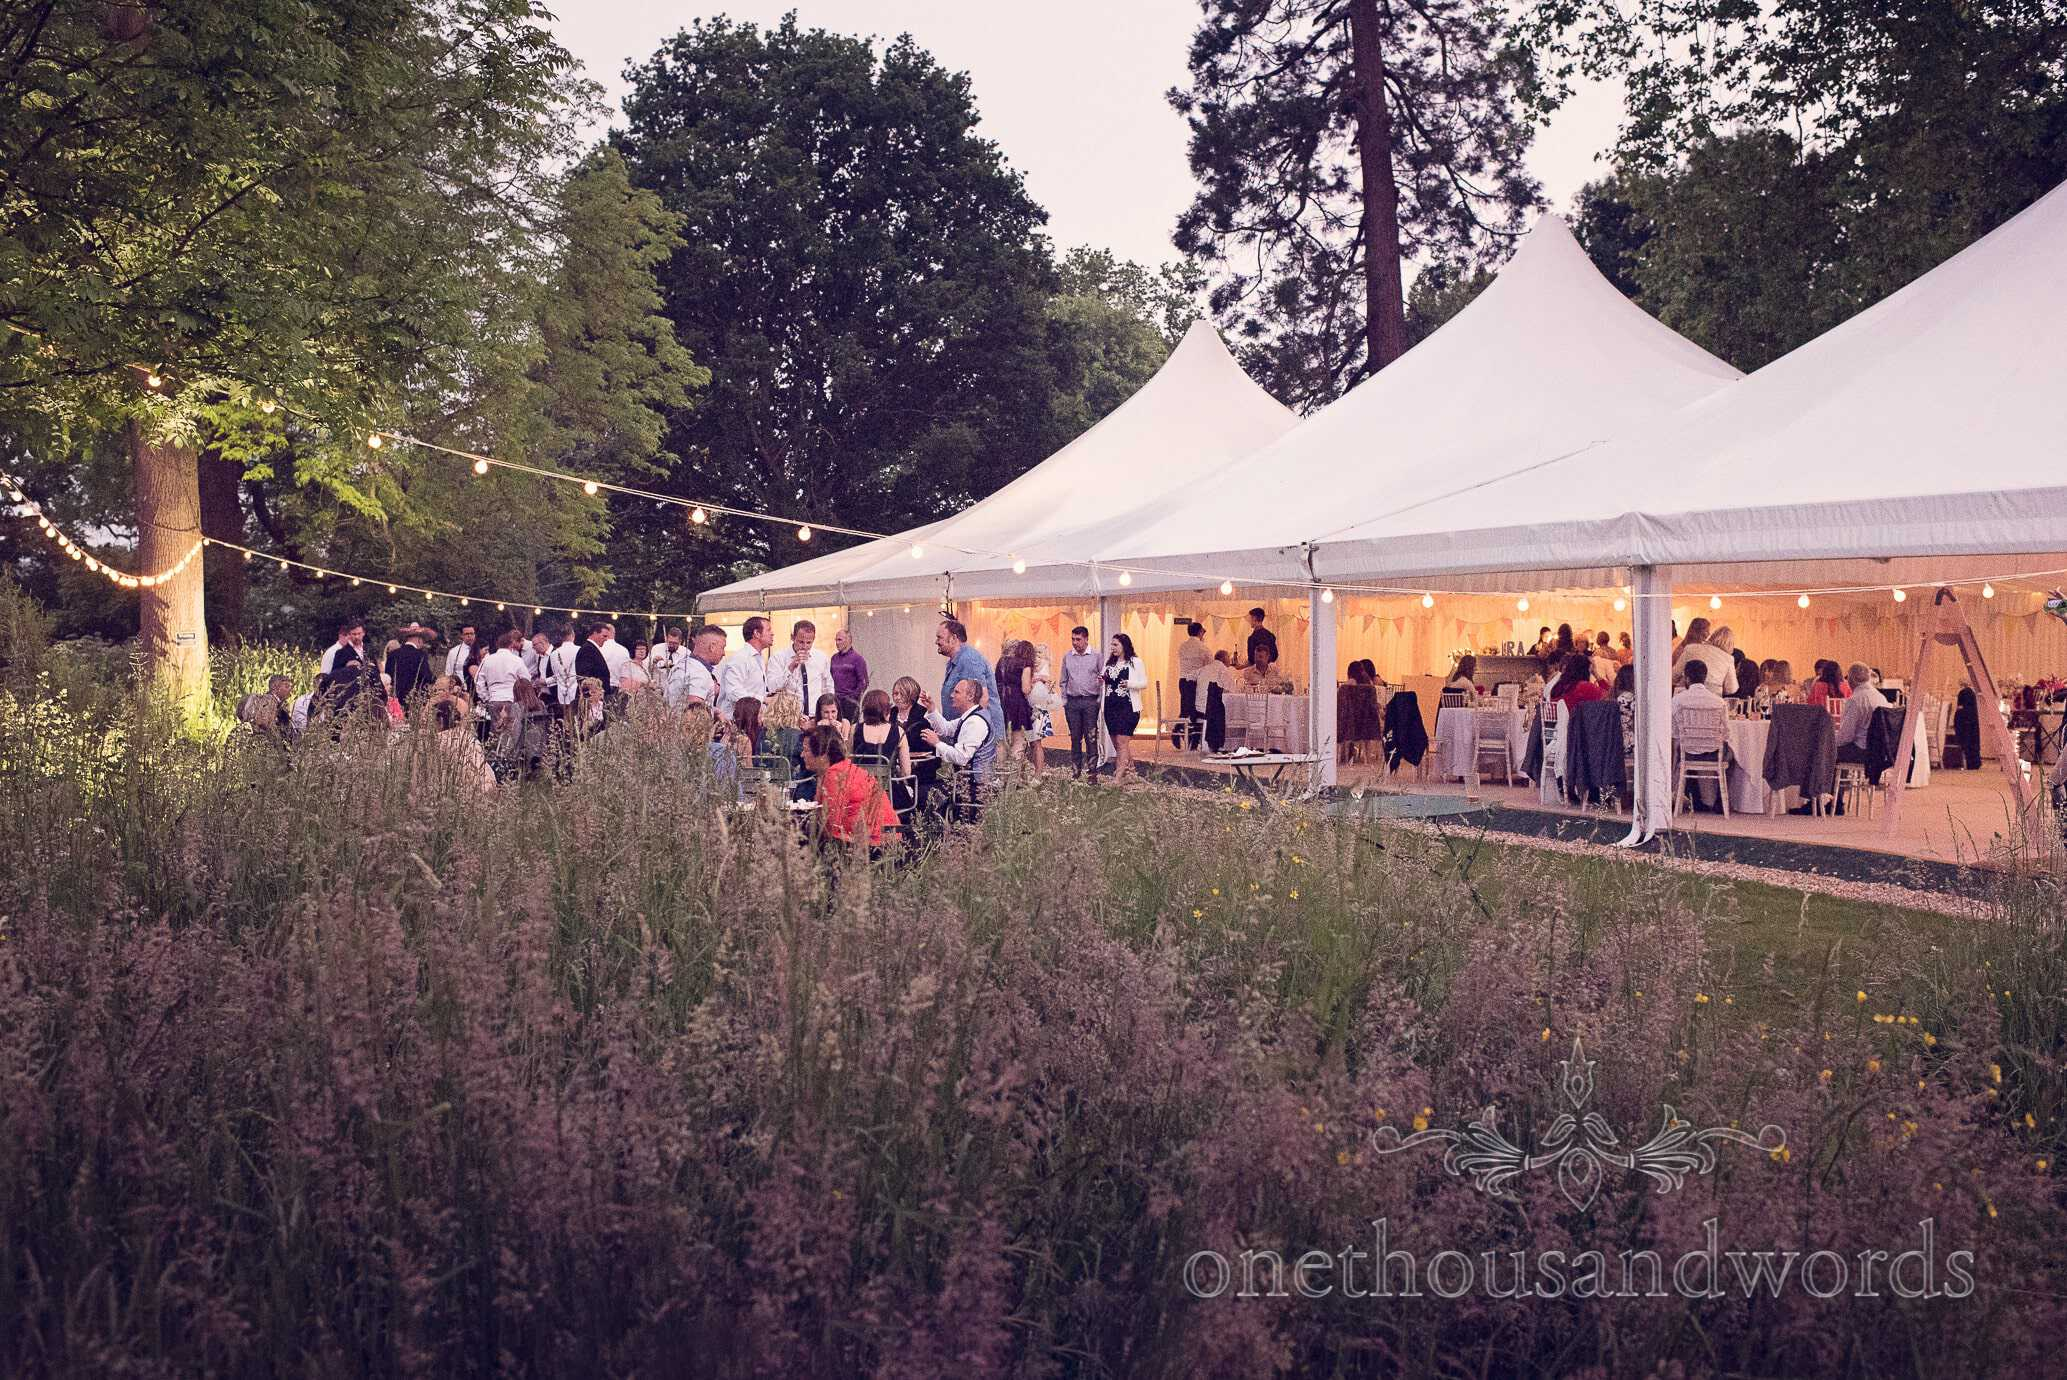 Wedding marquee and garden in the evening with festoon lighting